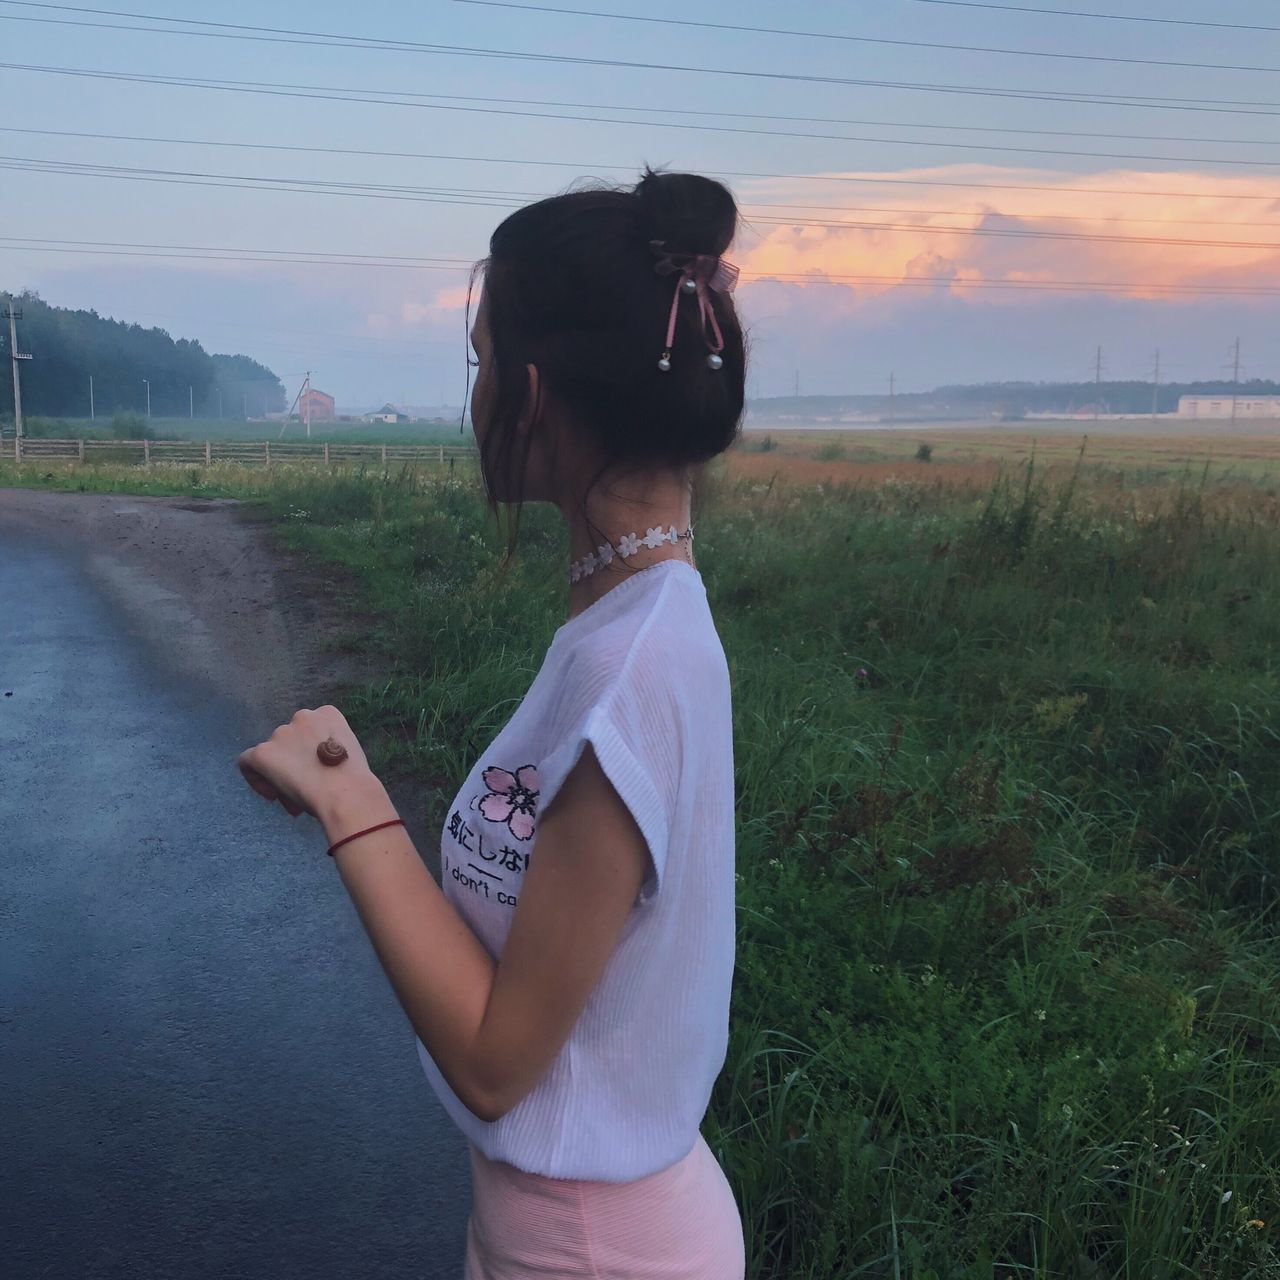 one person, real people, field, land, lifestyles, sky, standing, plant, leisure activity, casual clothing, nature, grass, landscape, environment, sunset, three quarter length, rear view, non-urban scene, waist up, outdoors, hairstyle